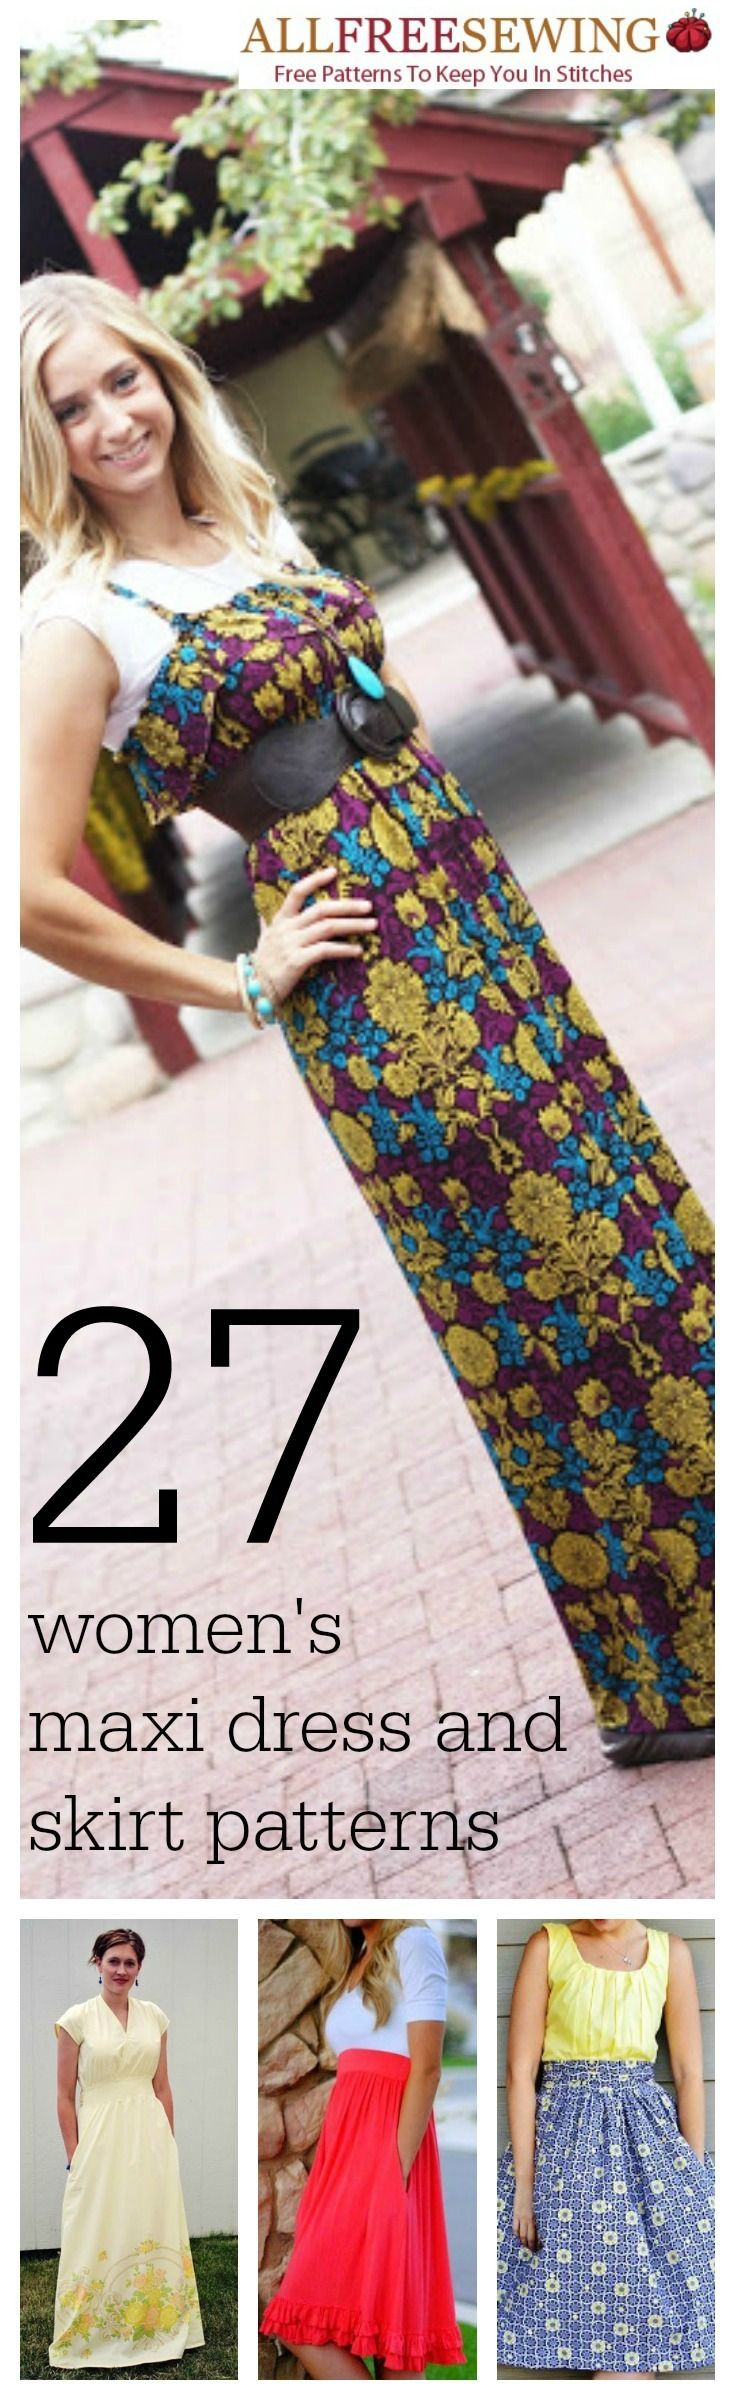 long dresses for summer womenus maxi dresses and skirts maxi